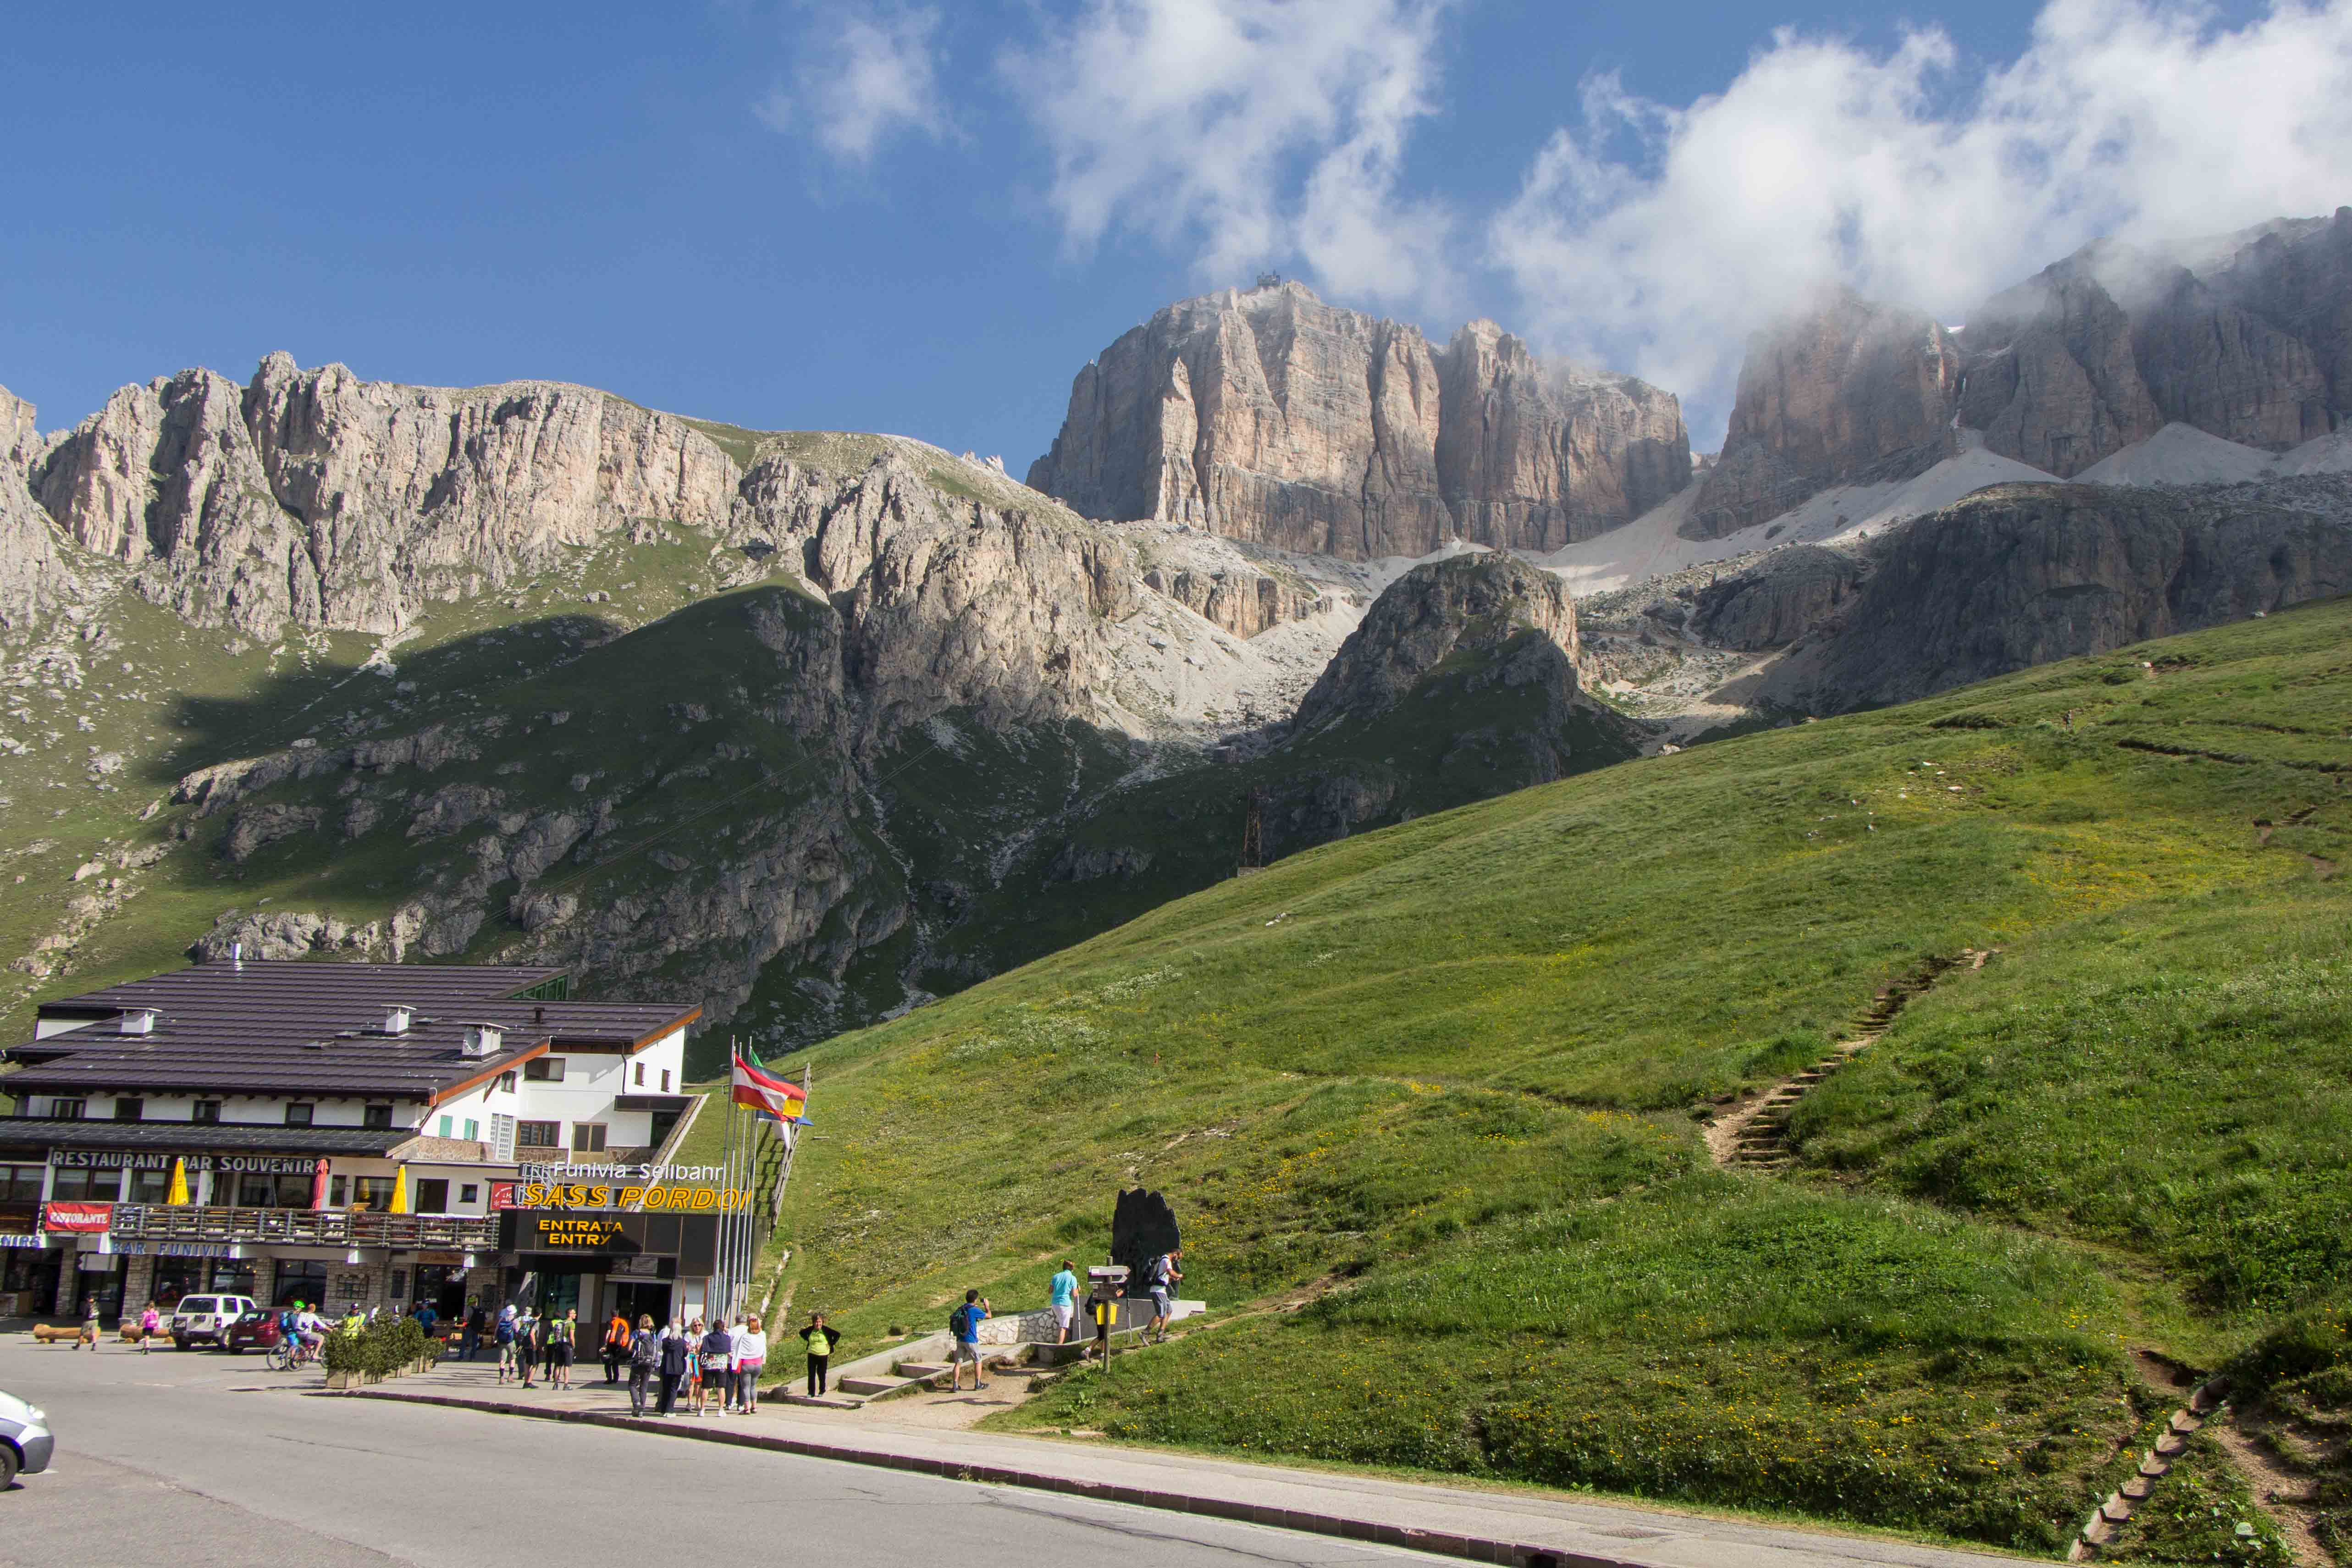 Hike across the sella group val gardena dolomites italy for Where are the dolomites located in italy